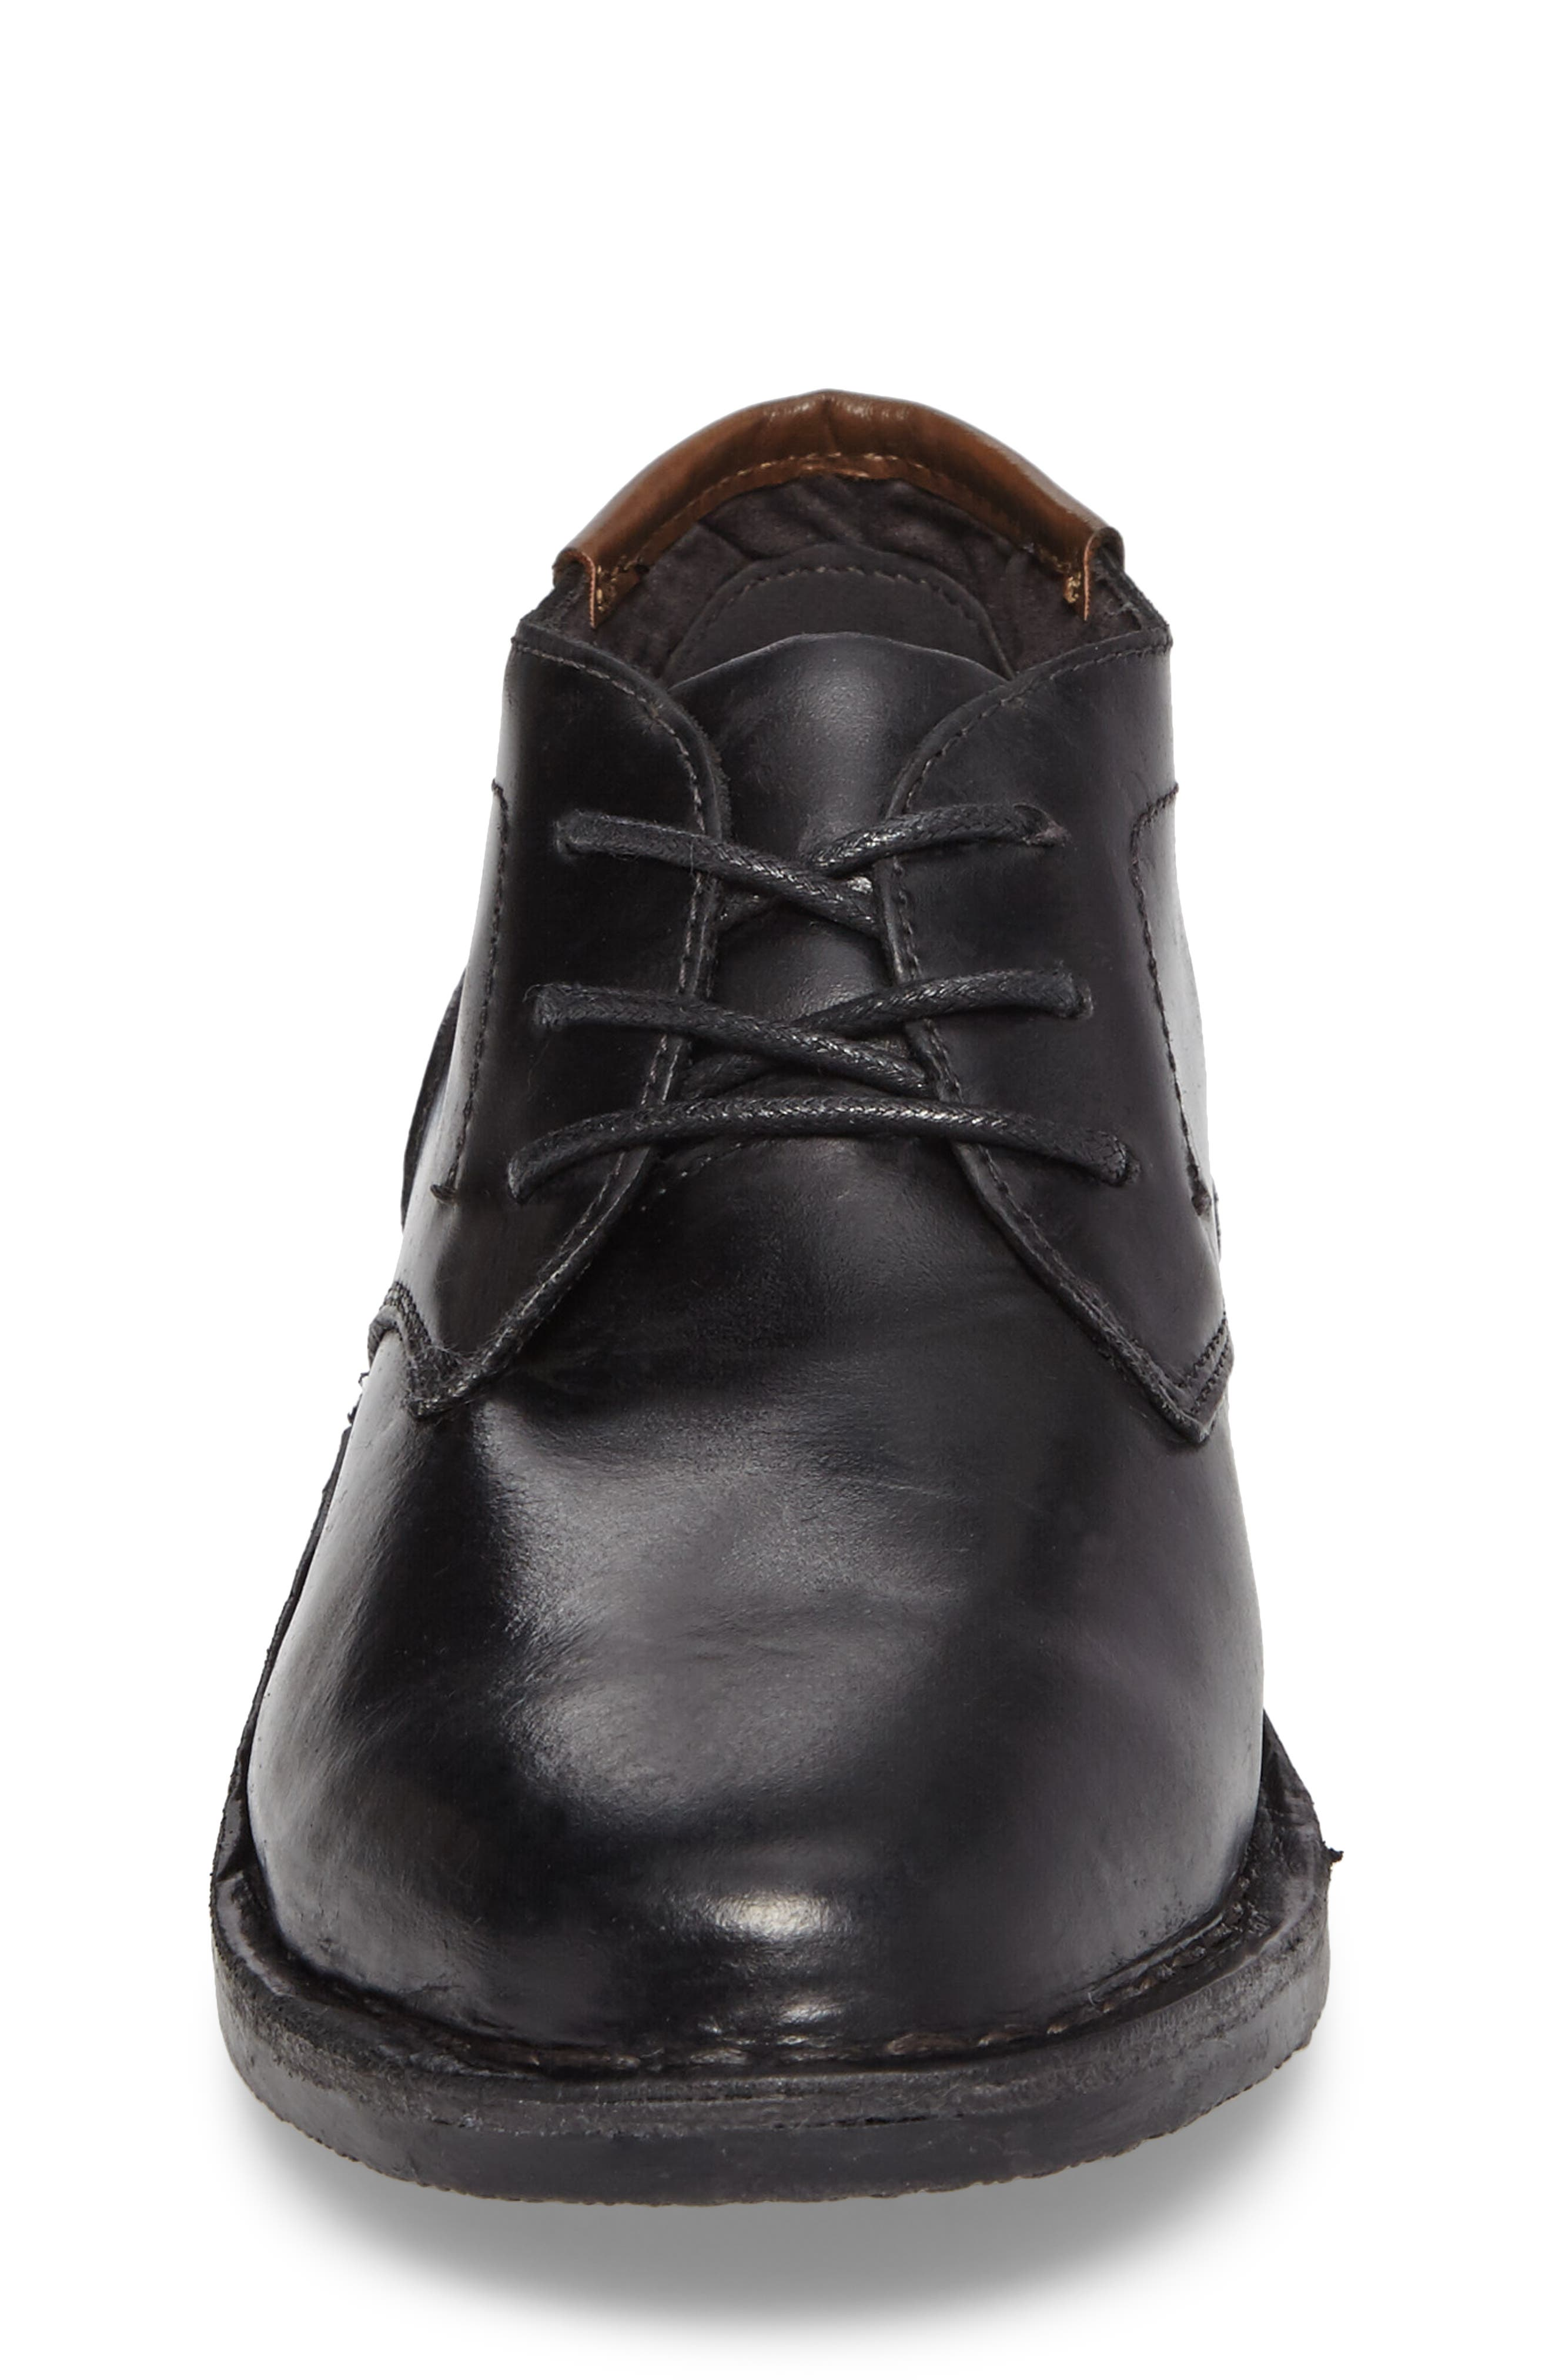 Real Deal Chukka Boot,                             Alternate thumbnail 4, color,                             BLACK LEATHER